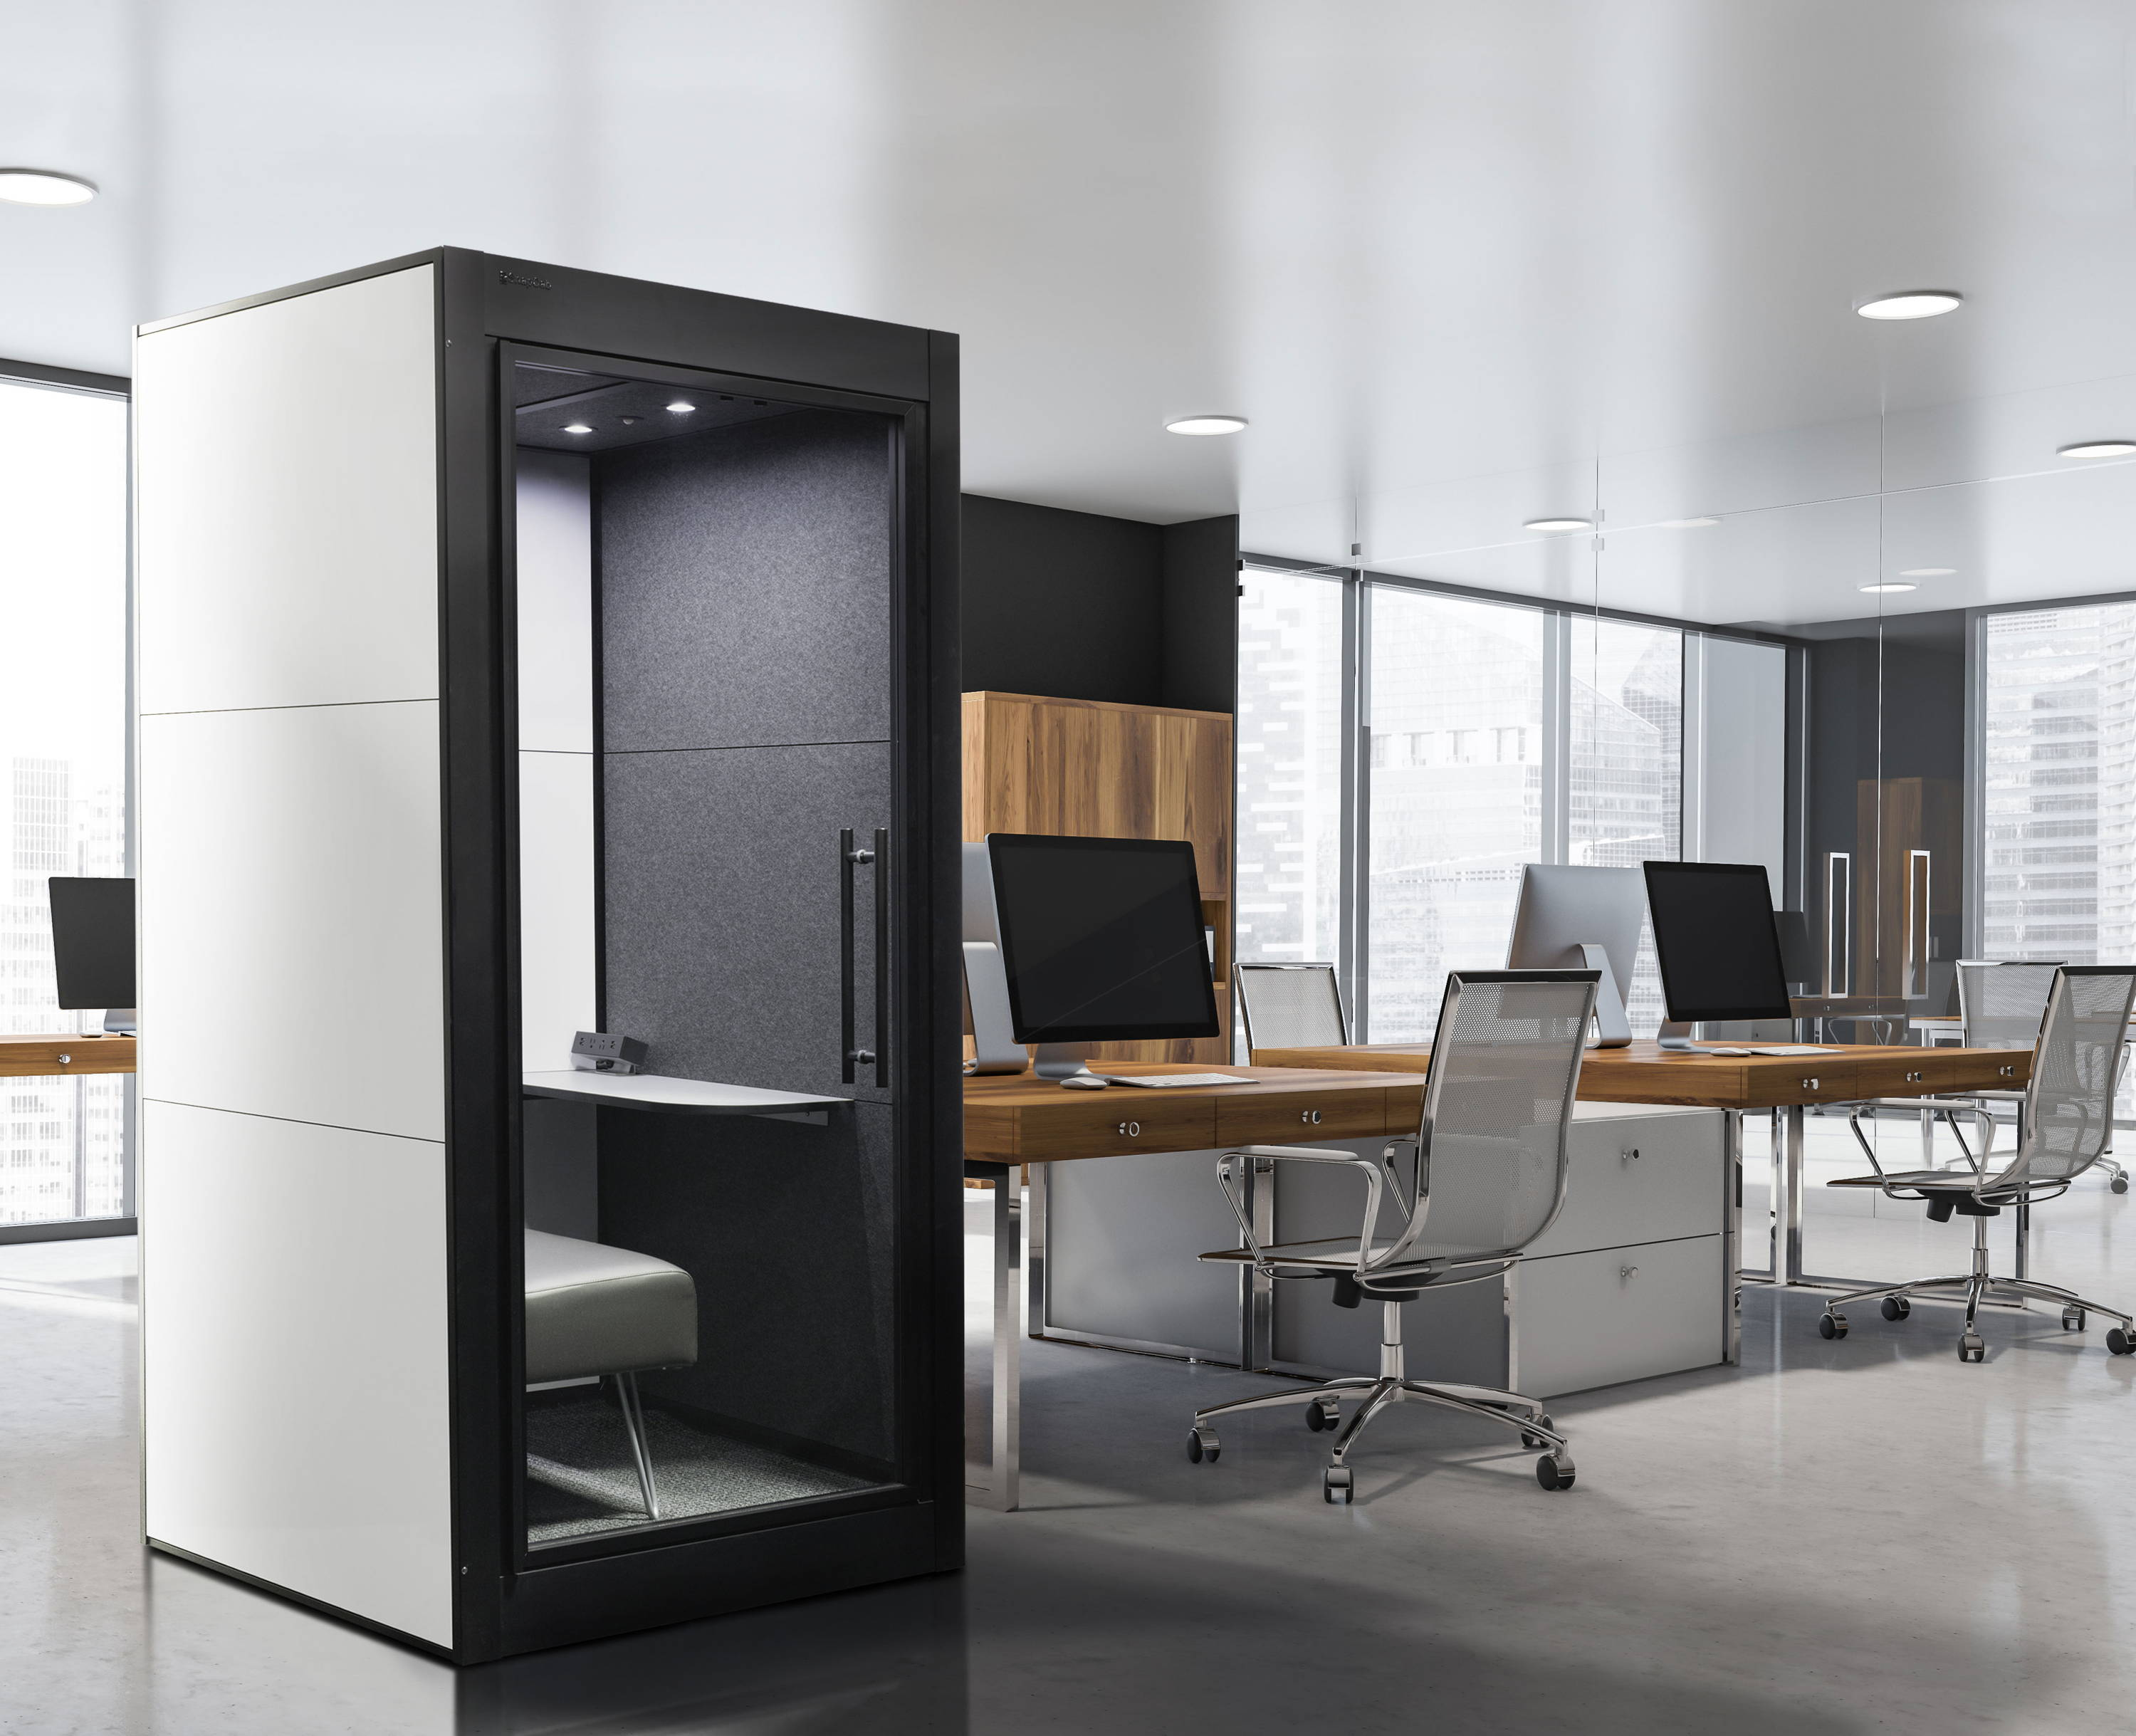 SnapCab Focus office pod in an open office environment shows sound and visual privacy